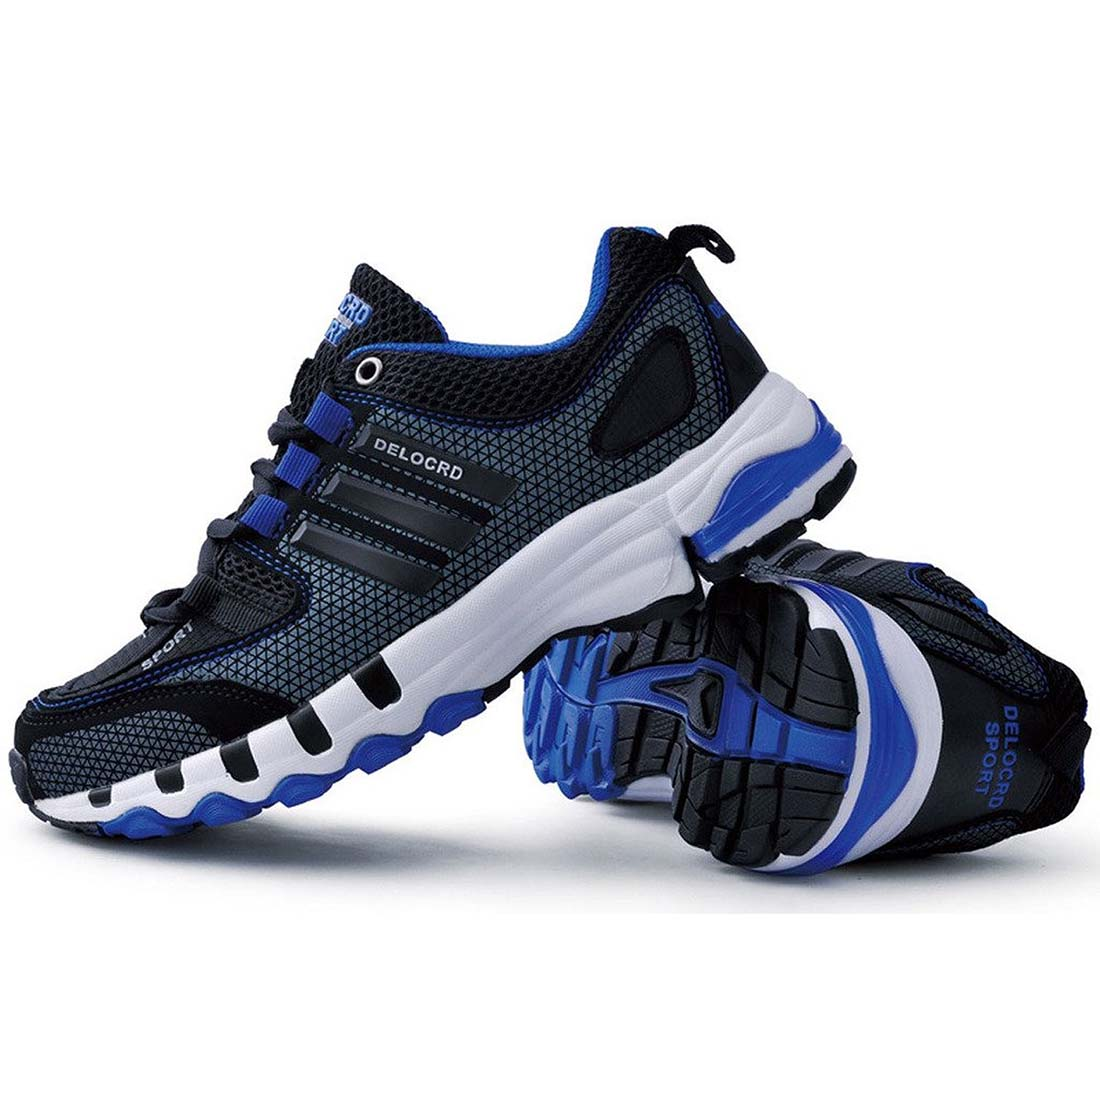 New Sale DELOCRD Mens Retro sports shoes Wearable running shoes Black+blue 39/40/41/42/43/44/45/46/47/48